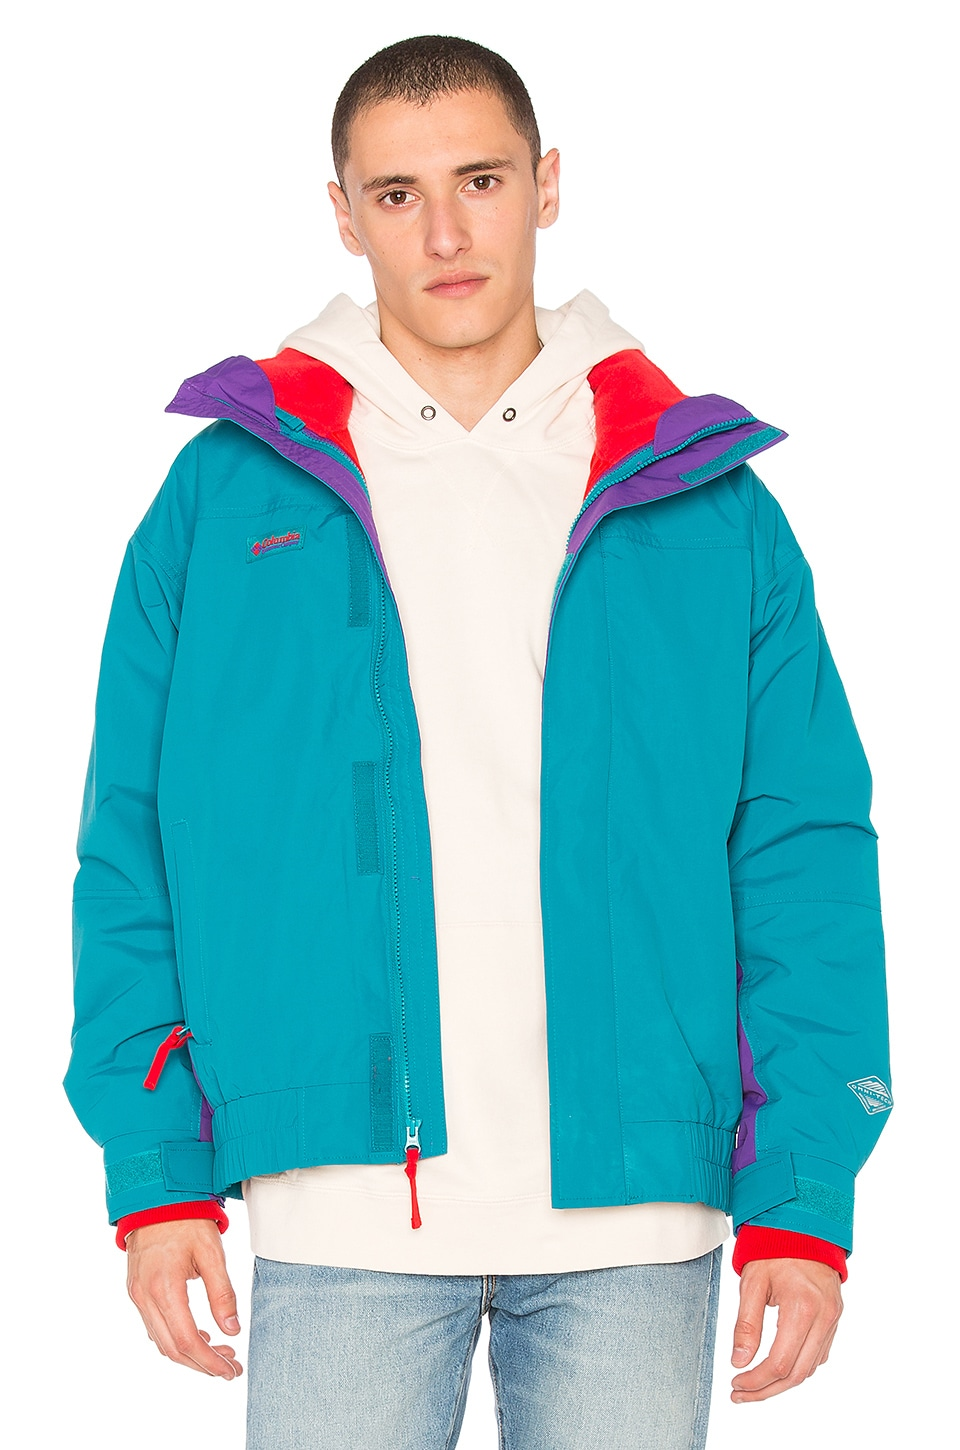 Columbia PNW Bugaboo 1986 Interchange Jacket in Sea Level & Royal Purple & Bright Red